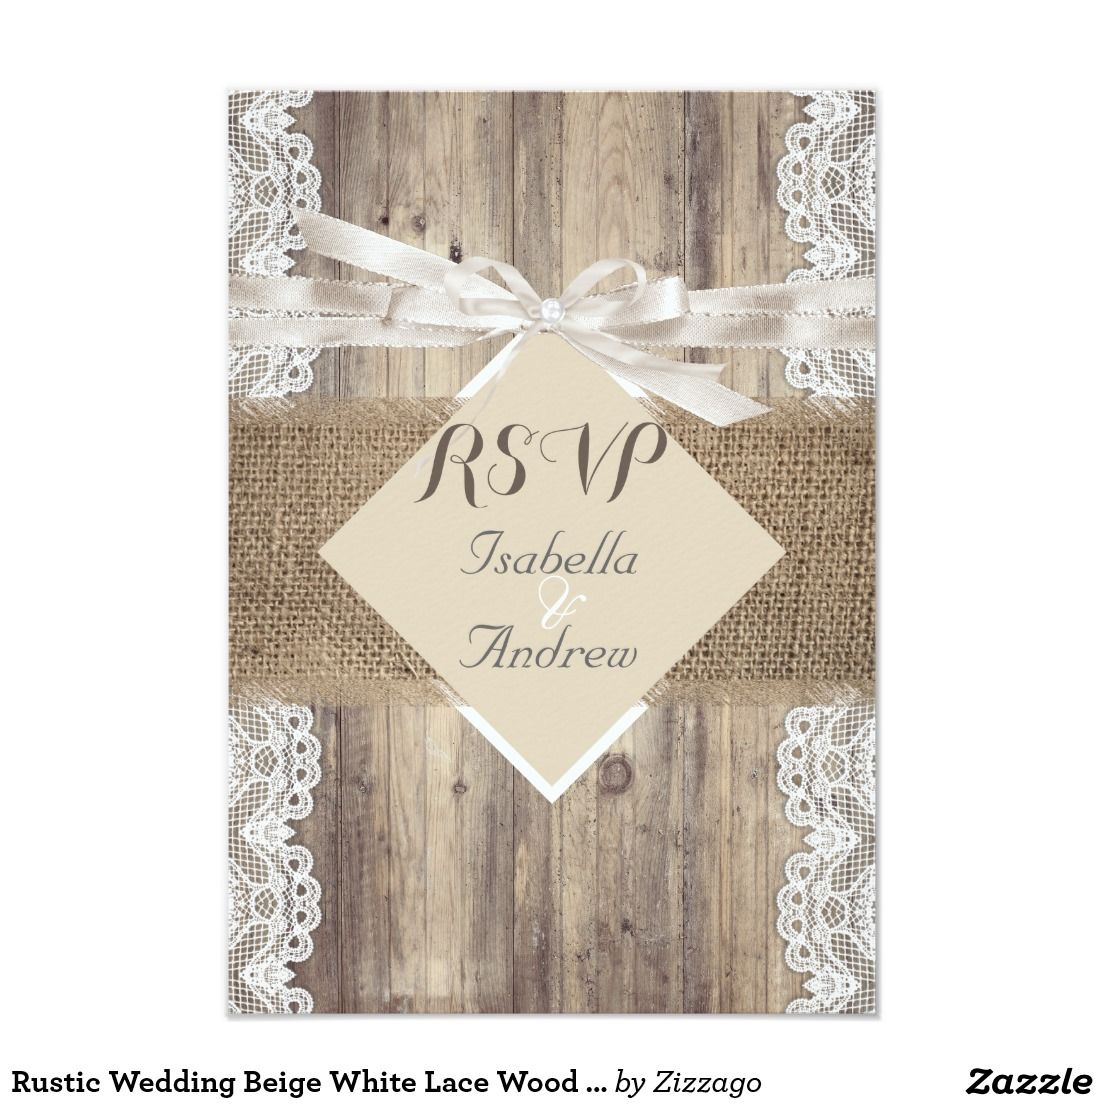 Rustic country burlap string lights lace wedding card - Rustic Country Burlap String Lights Lace Wedding Card 7